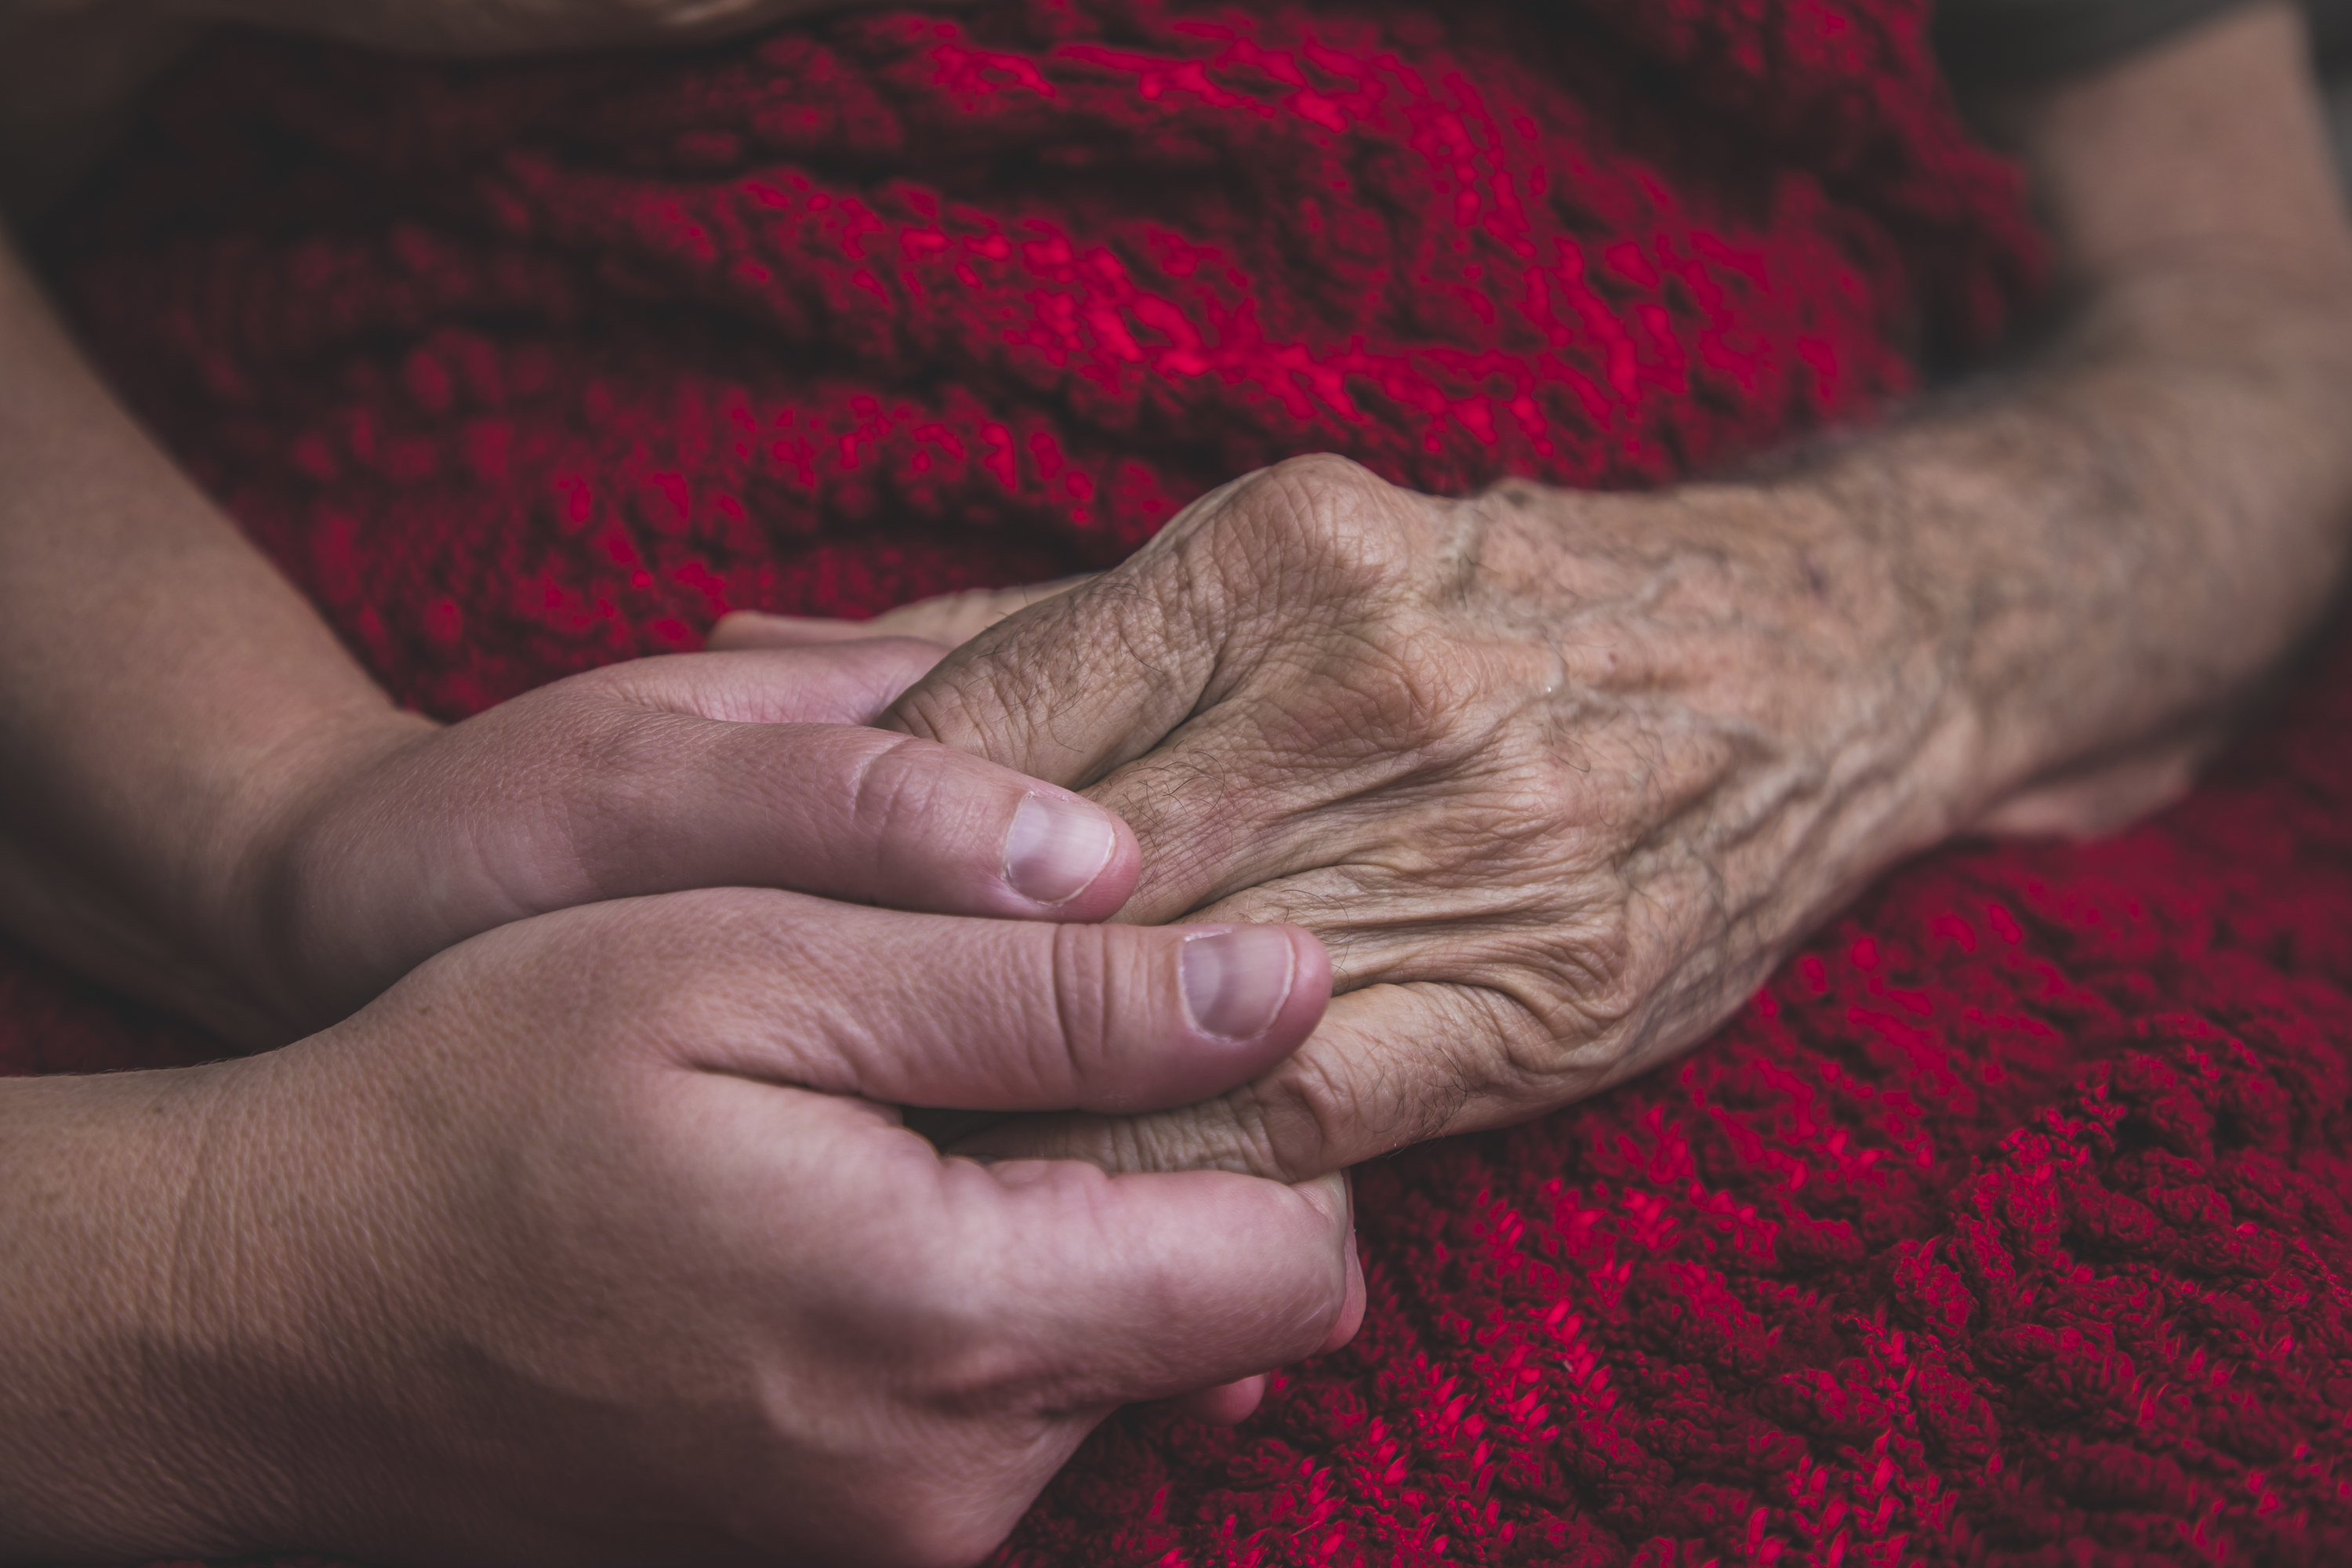 An image of a hand being held